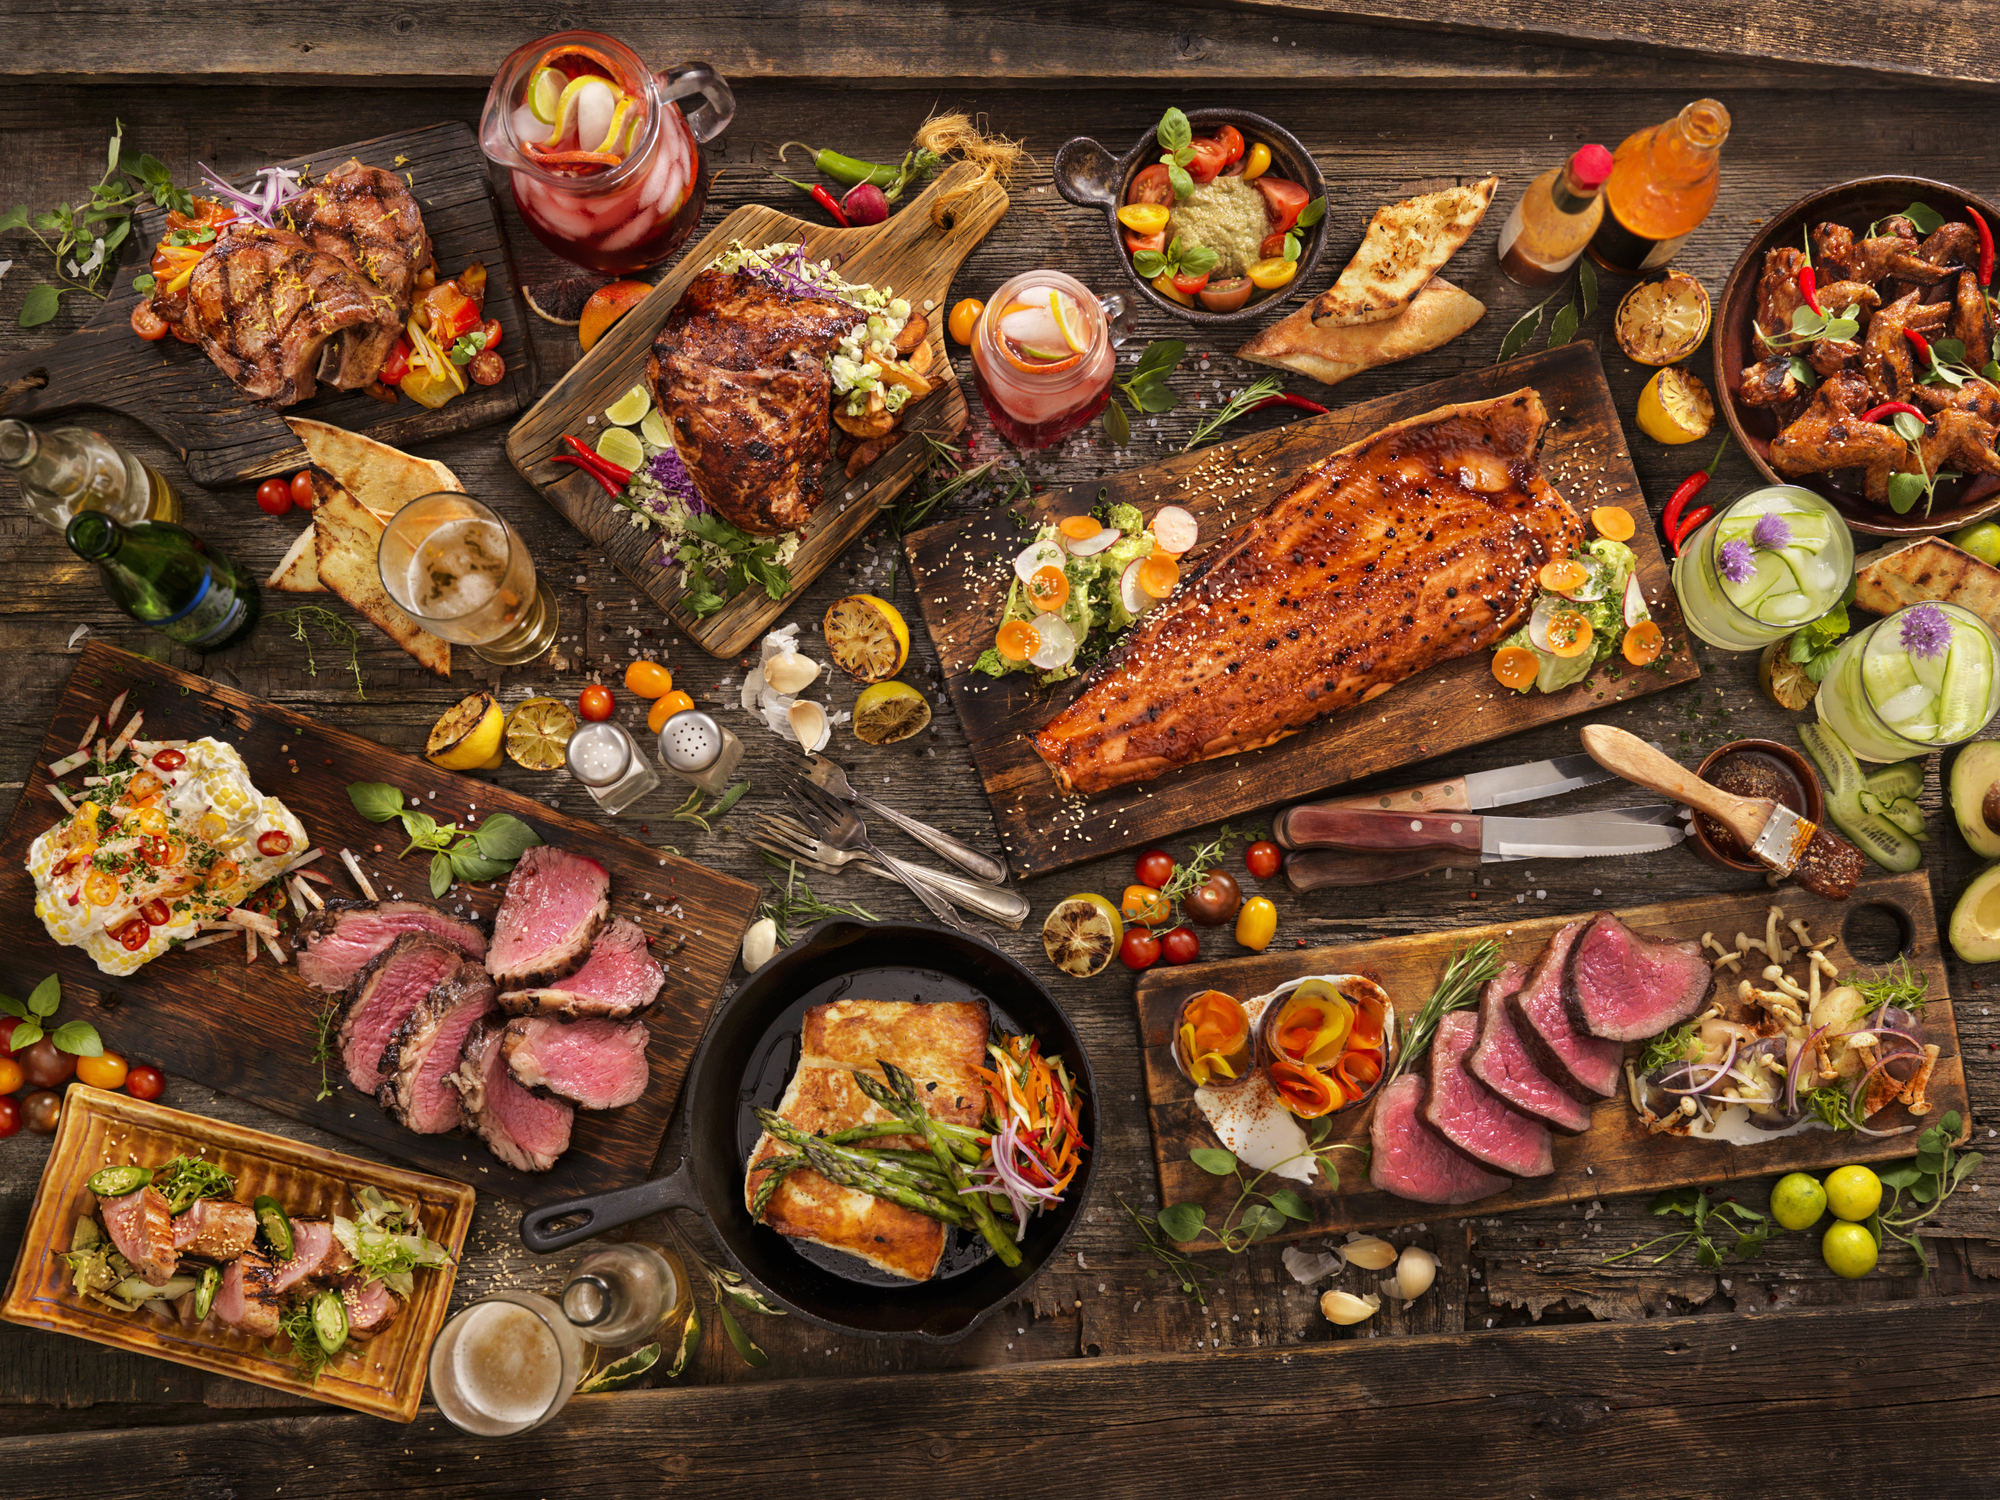 Assorted cuts of meat on a wooden table.